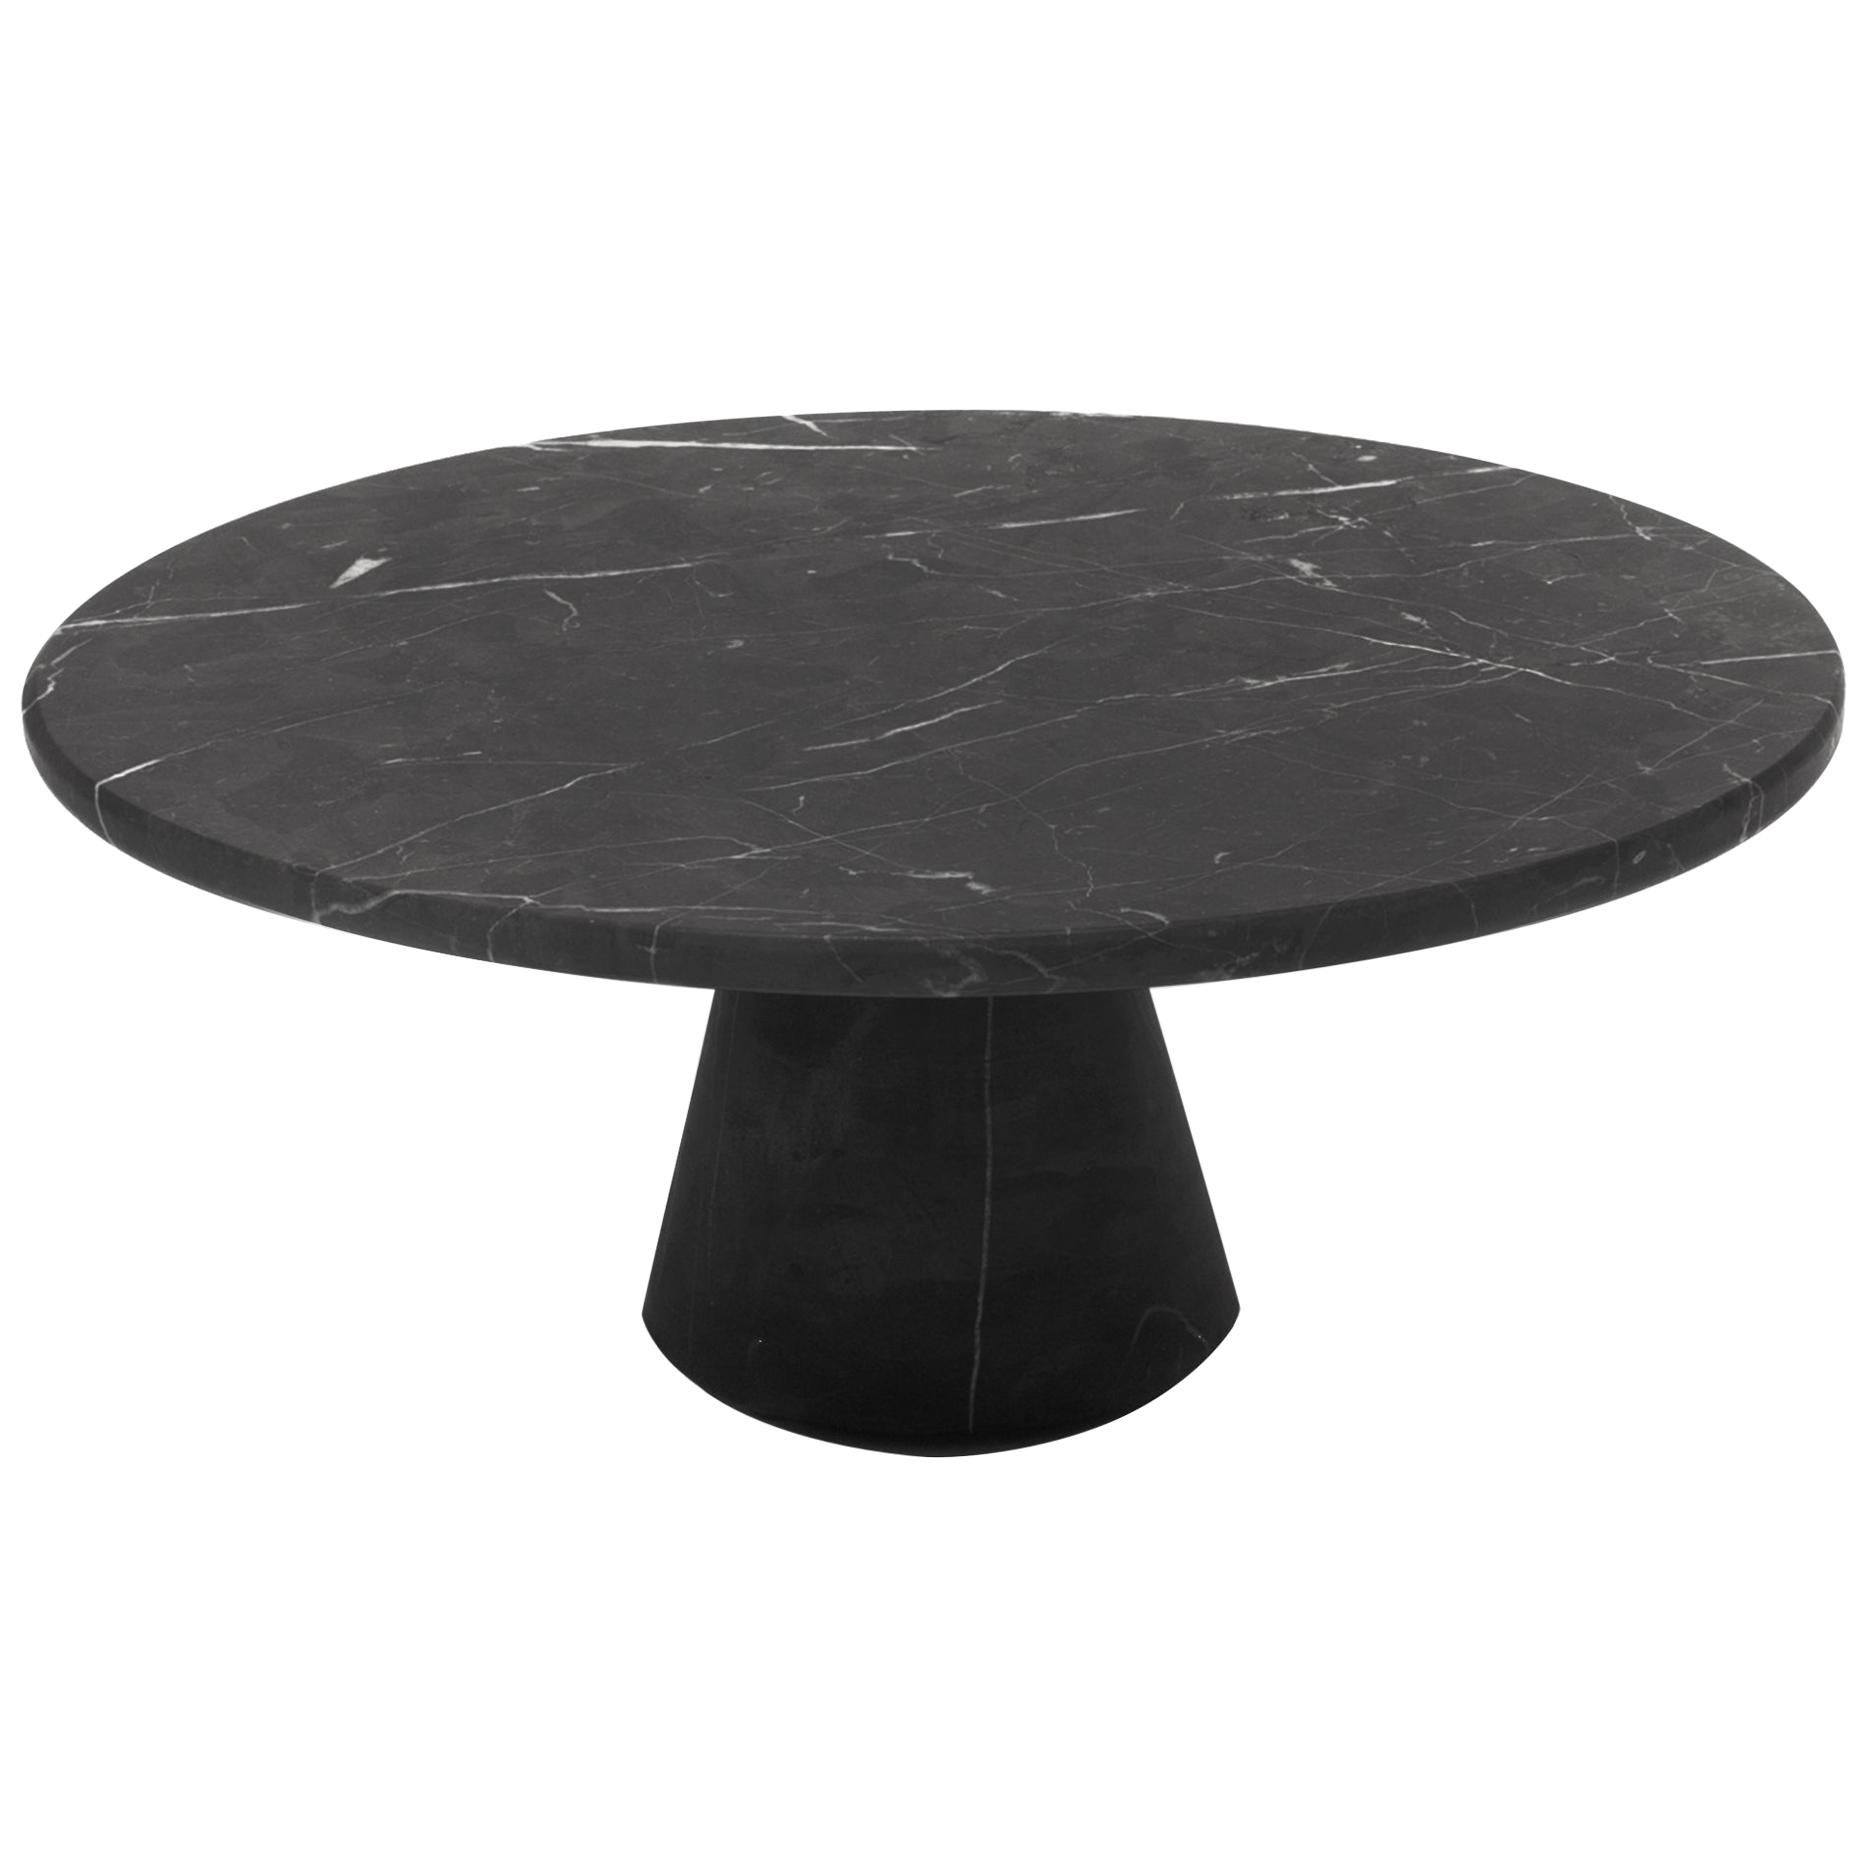 Cónica Cake Stand in Black Marble